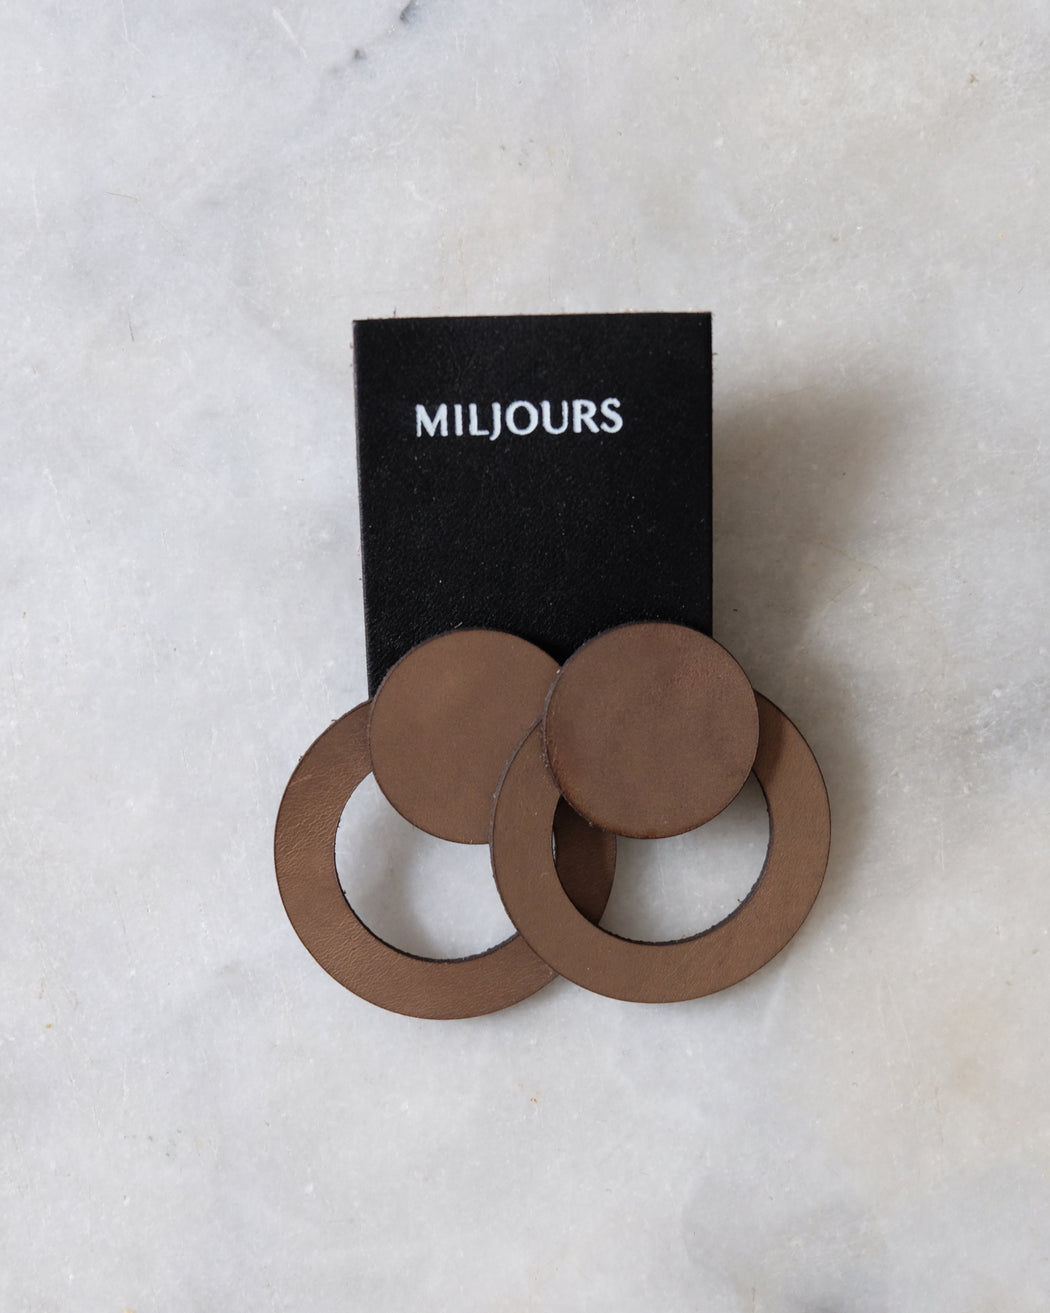 LEATHER EARRINGS | MILJOURS STUDIO